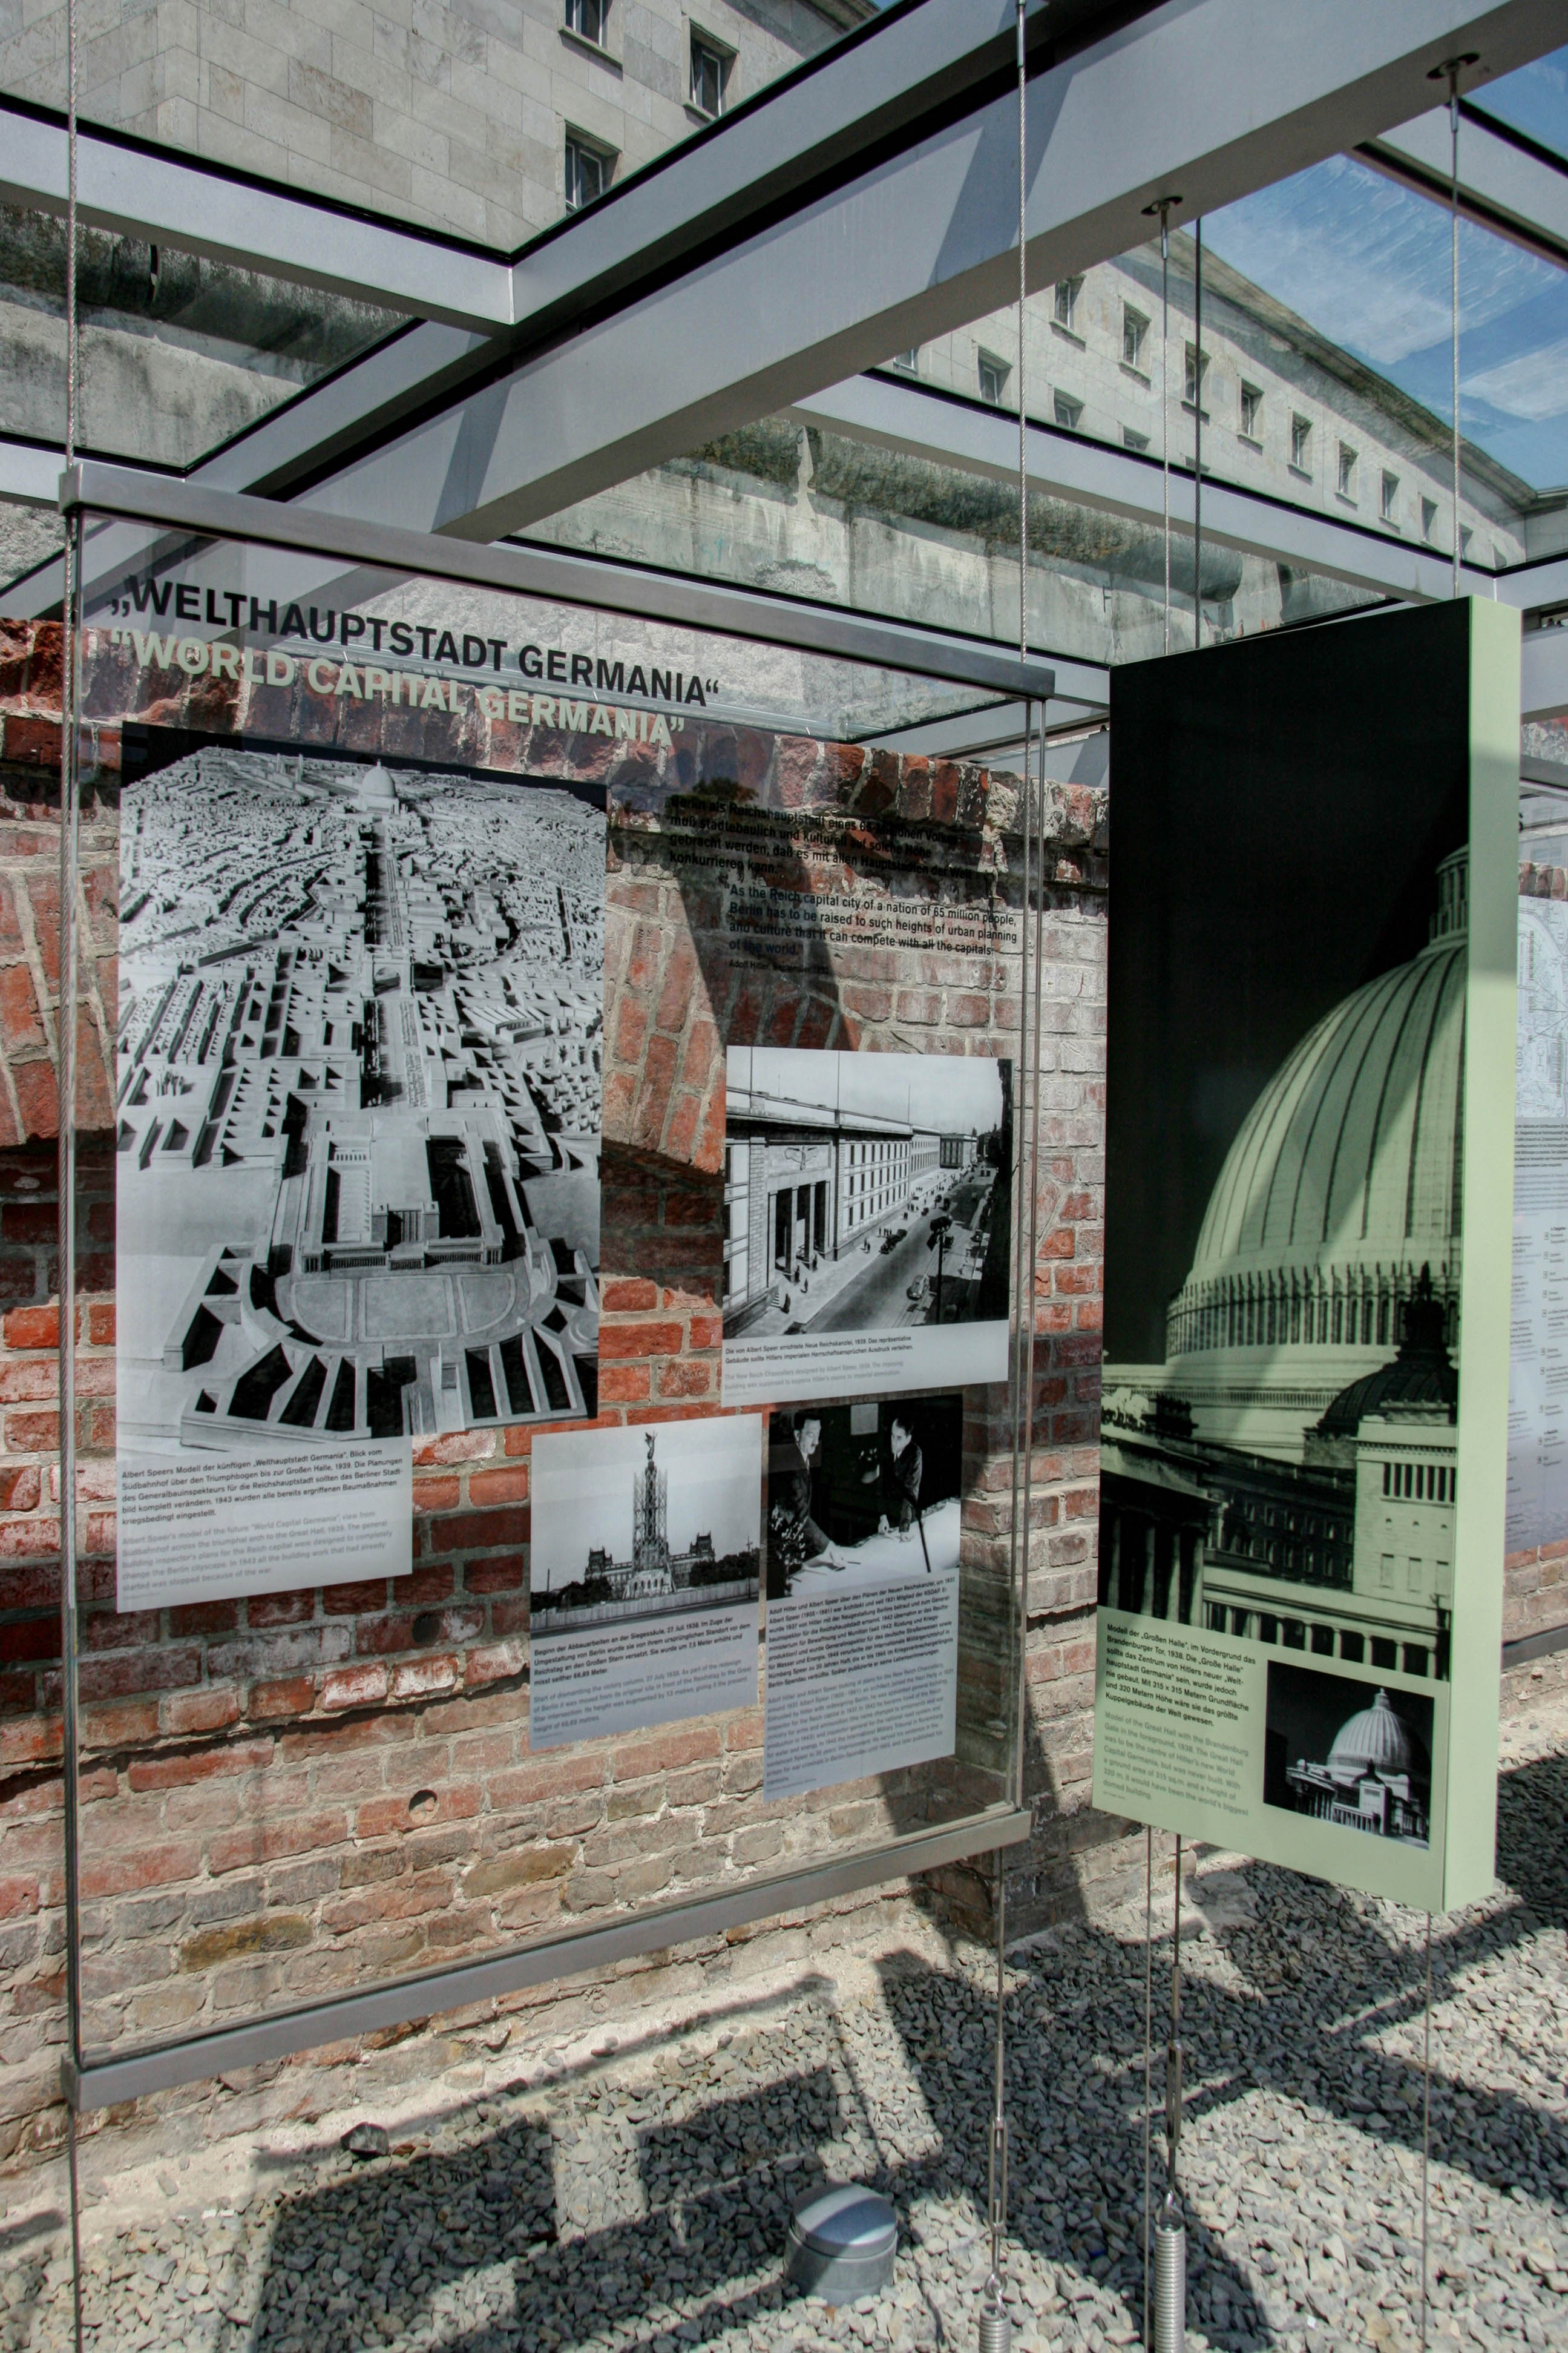 A display about Hitler and Speer's plans for Welthaupstadt Germania at Topographie des Terrors (Topography of Terror) in Berlin